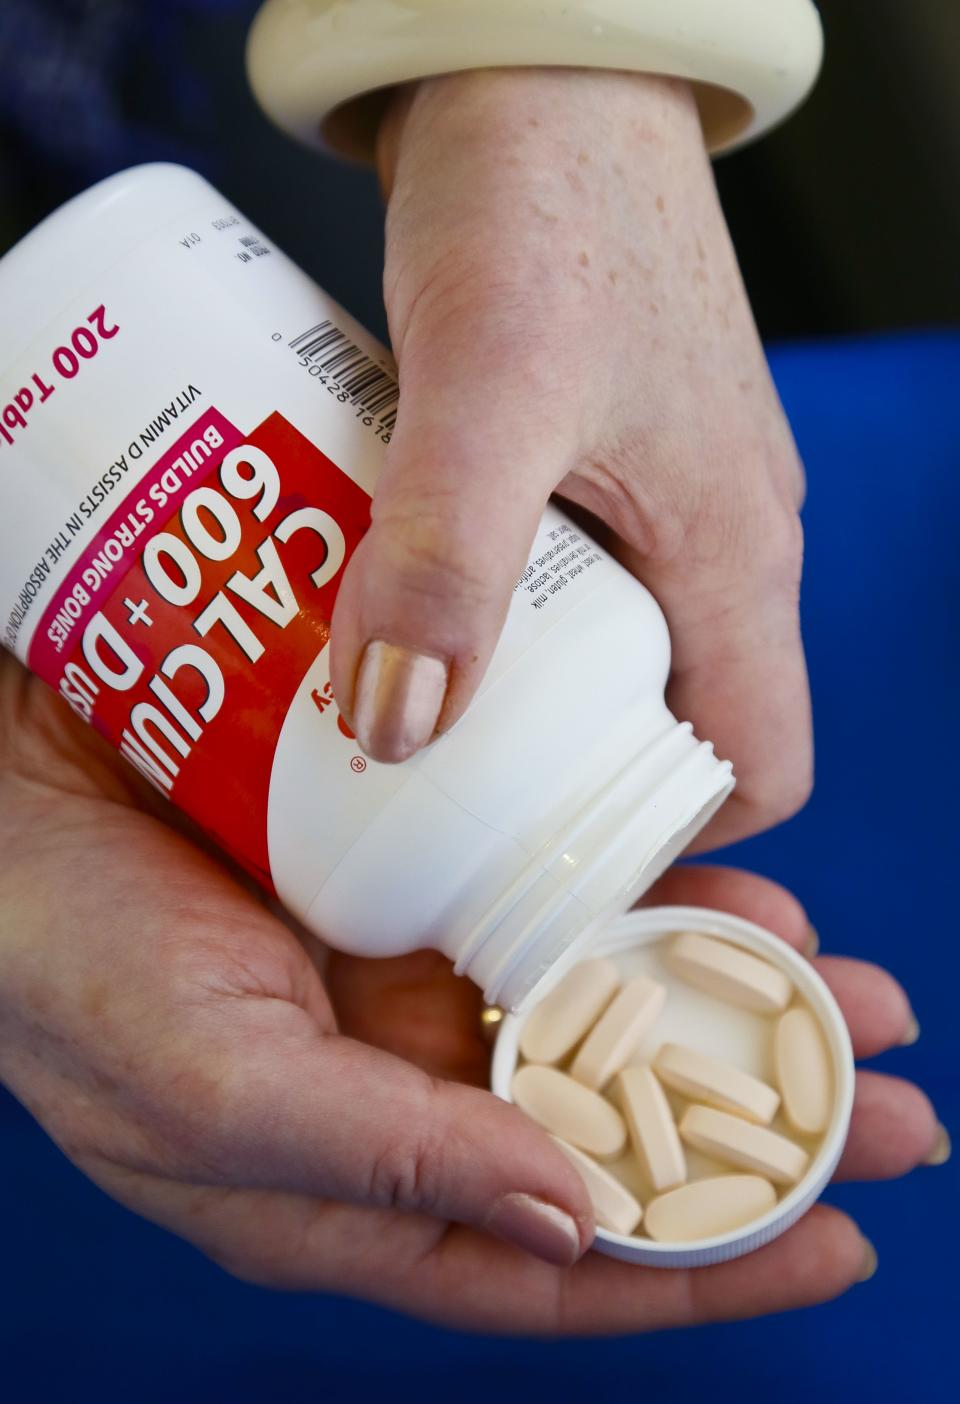 Panel questions value of calcium, vitamin D pills